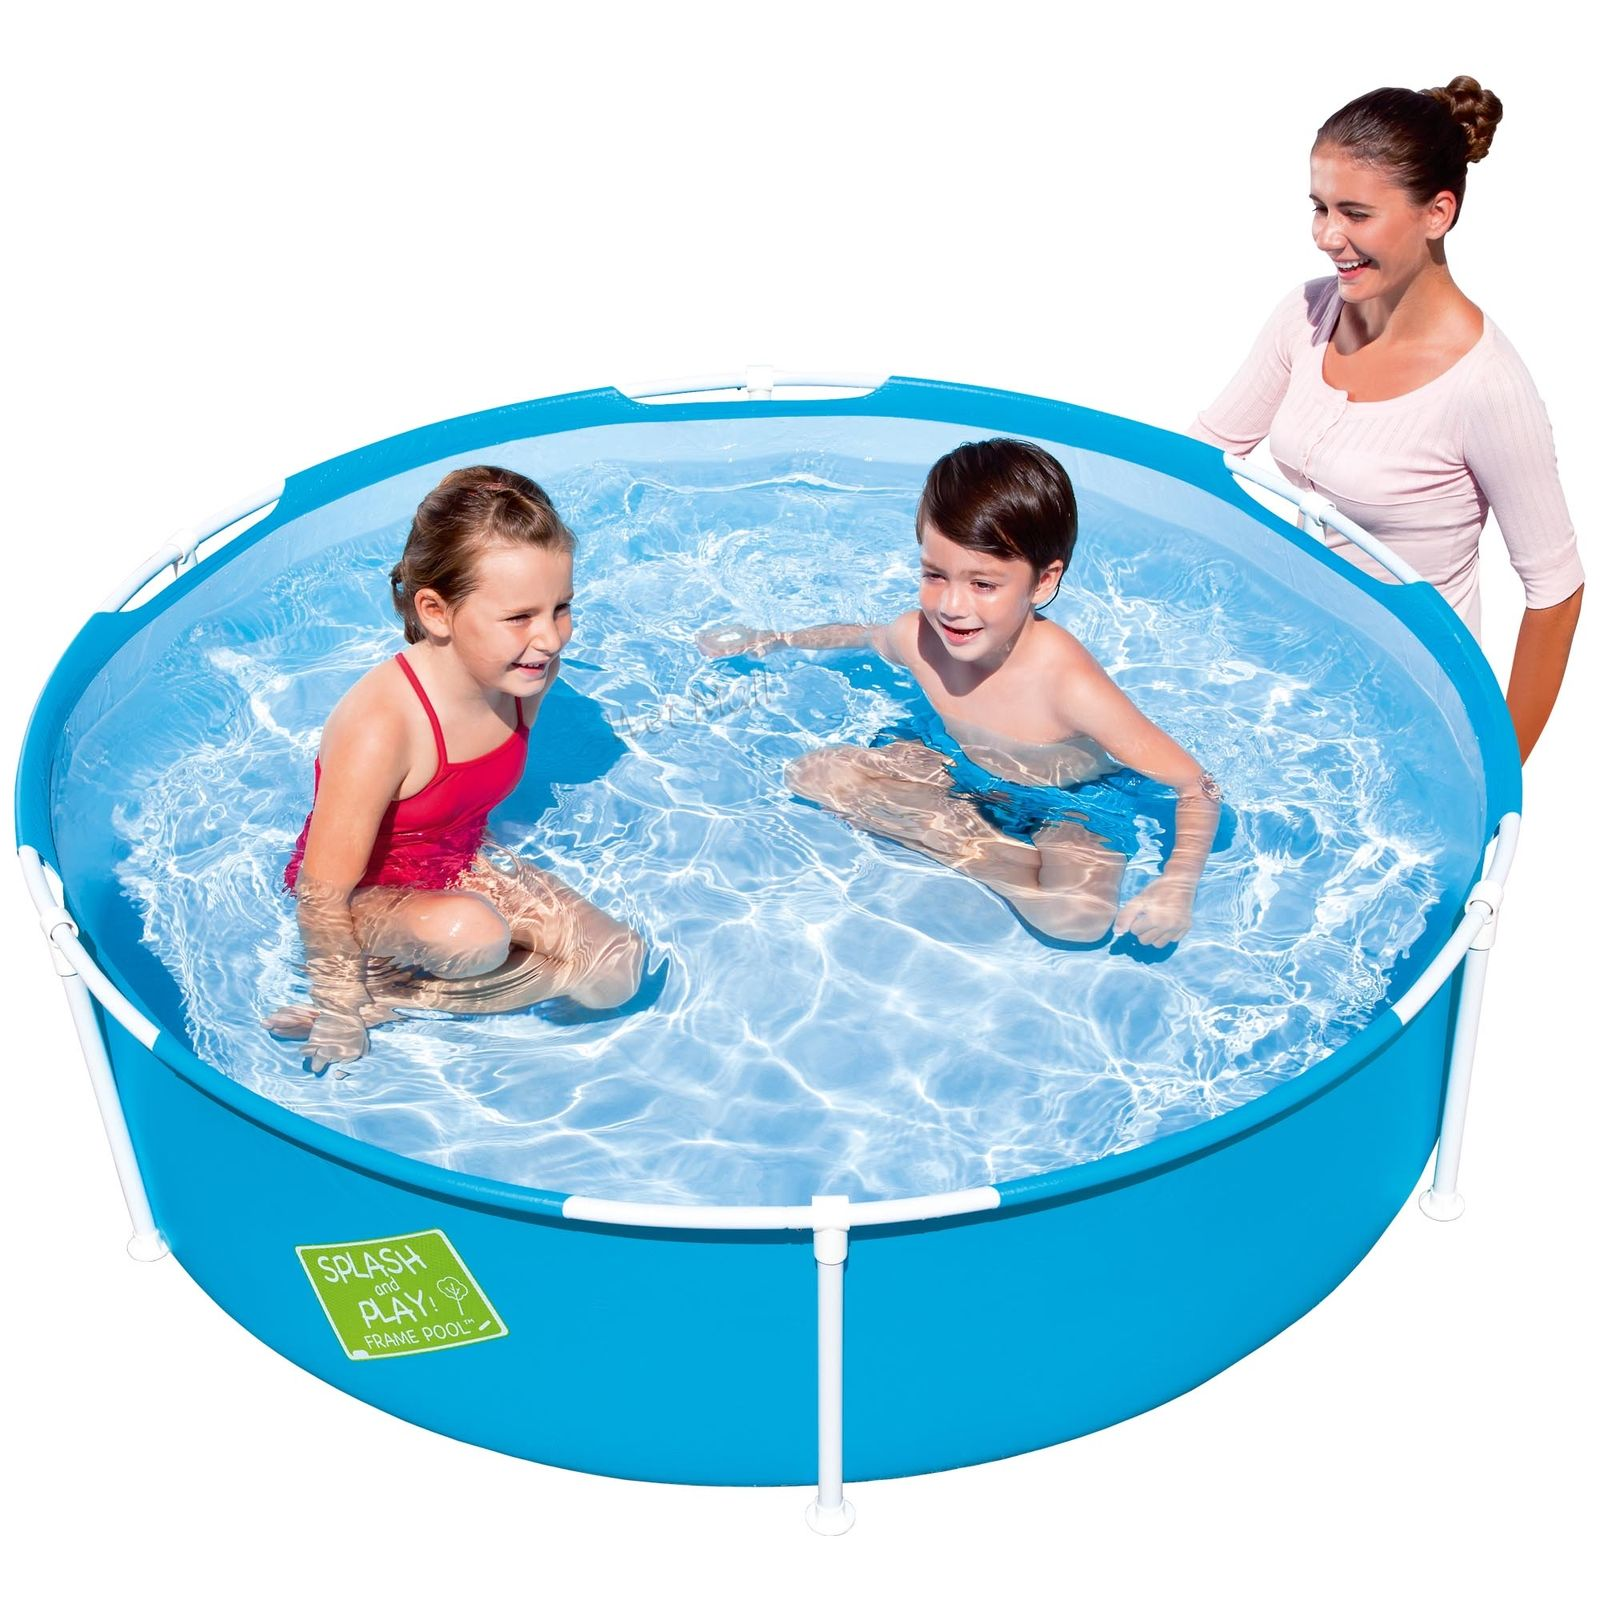 My first frame pool 60 x15 mini round kids wading kiddie - Is there sales tax on swimming pools ...